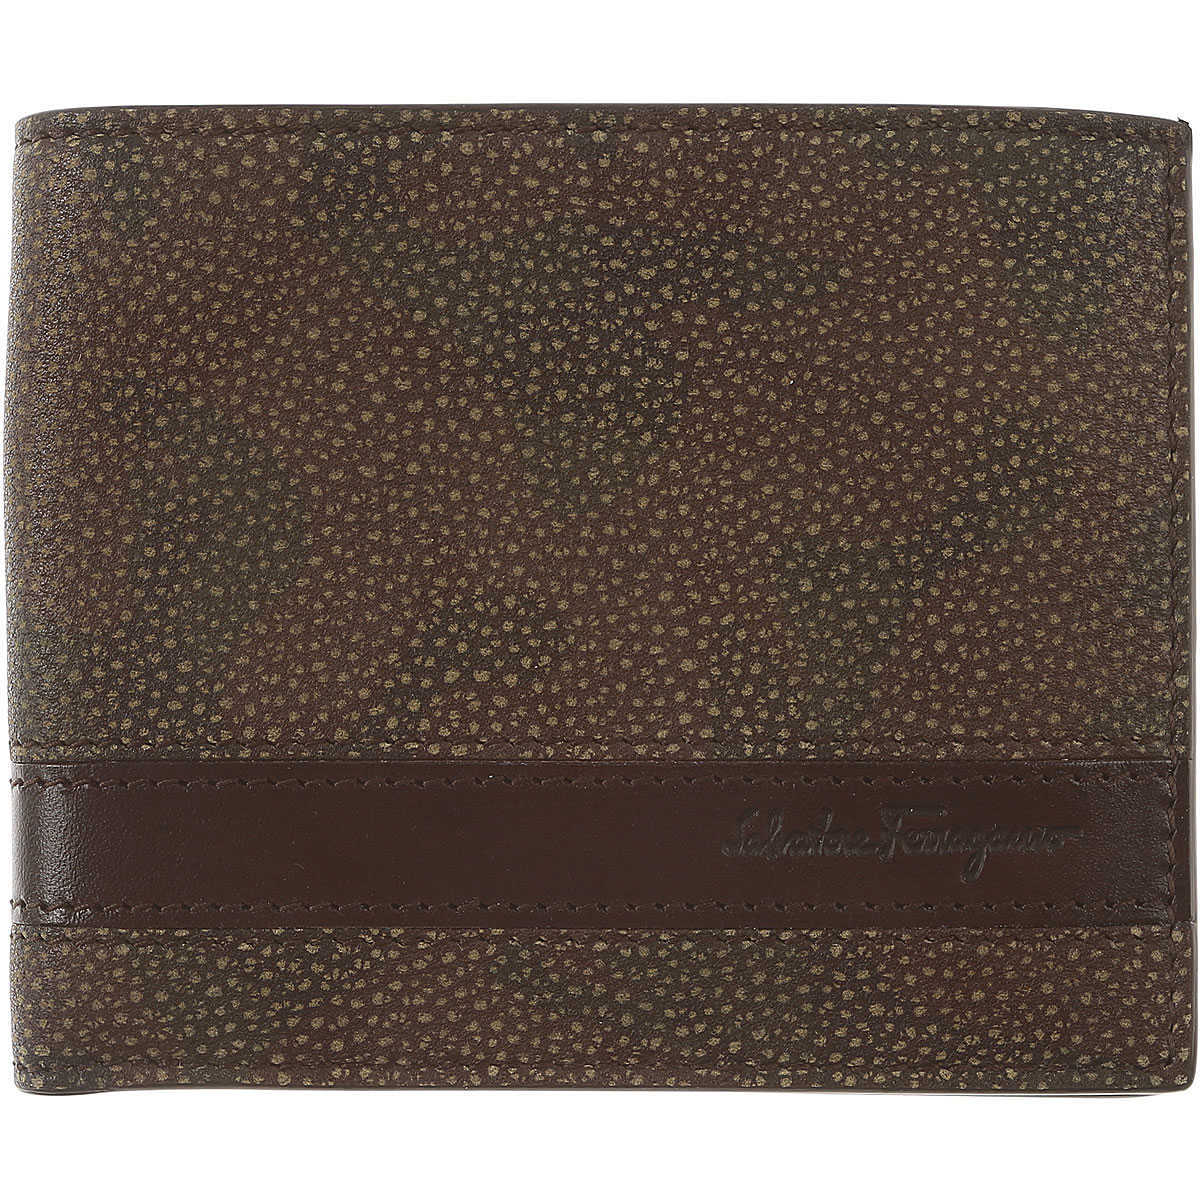 Salvatore Ferragamo Mens Wallets On Sale in Outlet Brown - GOOFASH